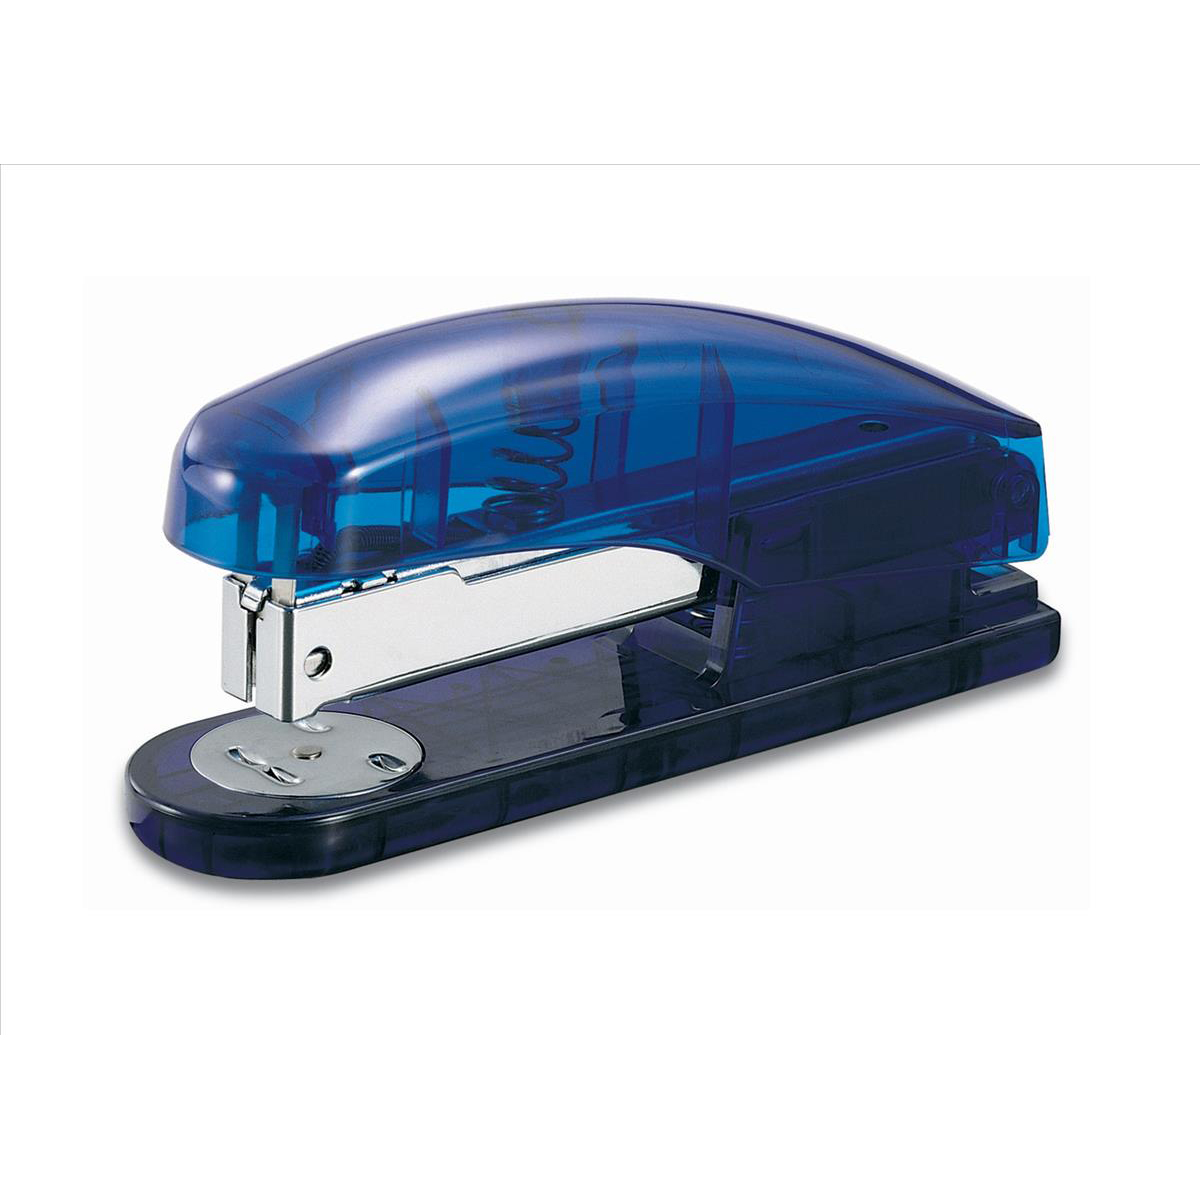 Long Arm Staplers 5 Star Office Half Strip Stapler 20 Sheets Blue Transparent